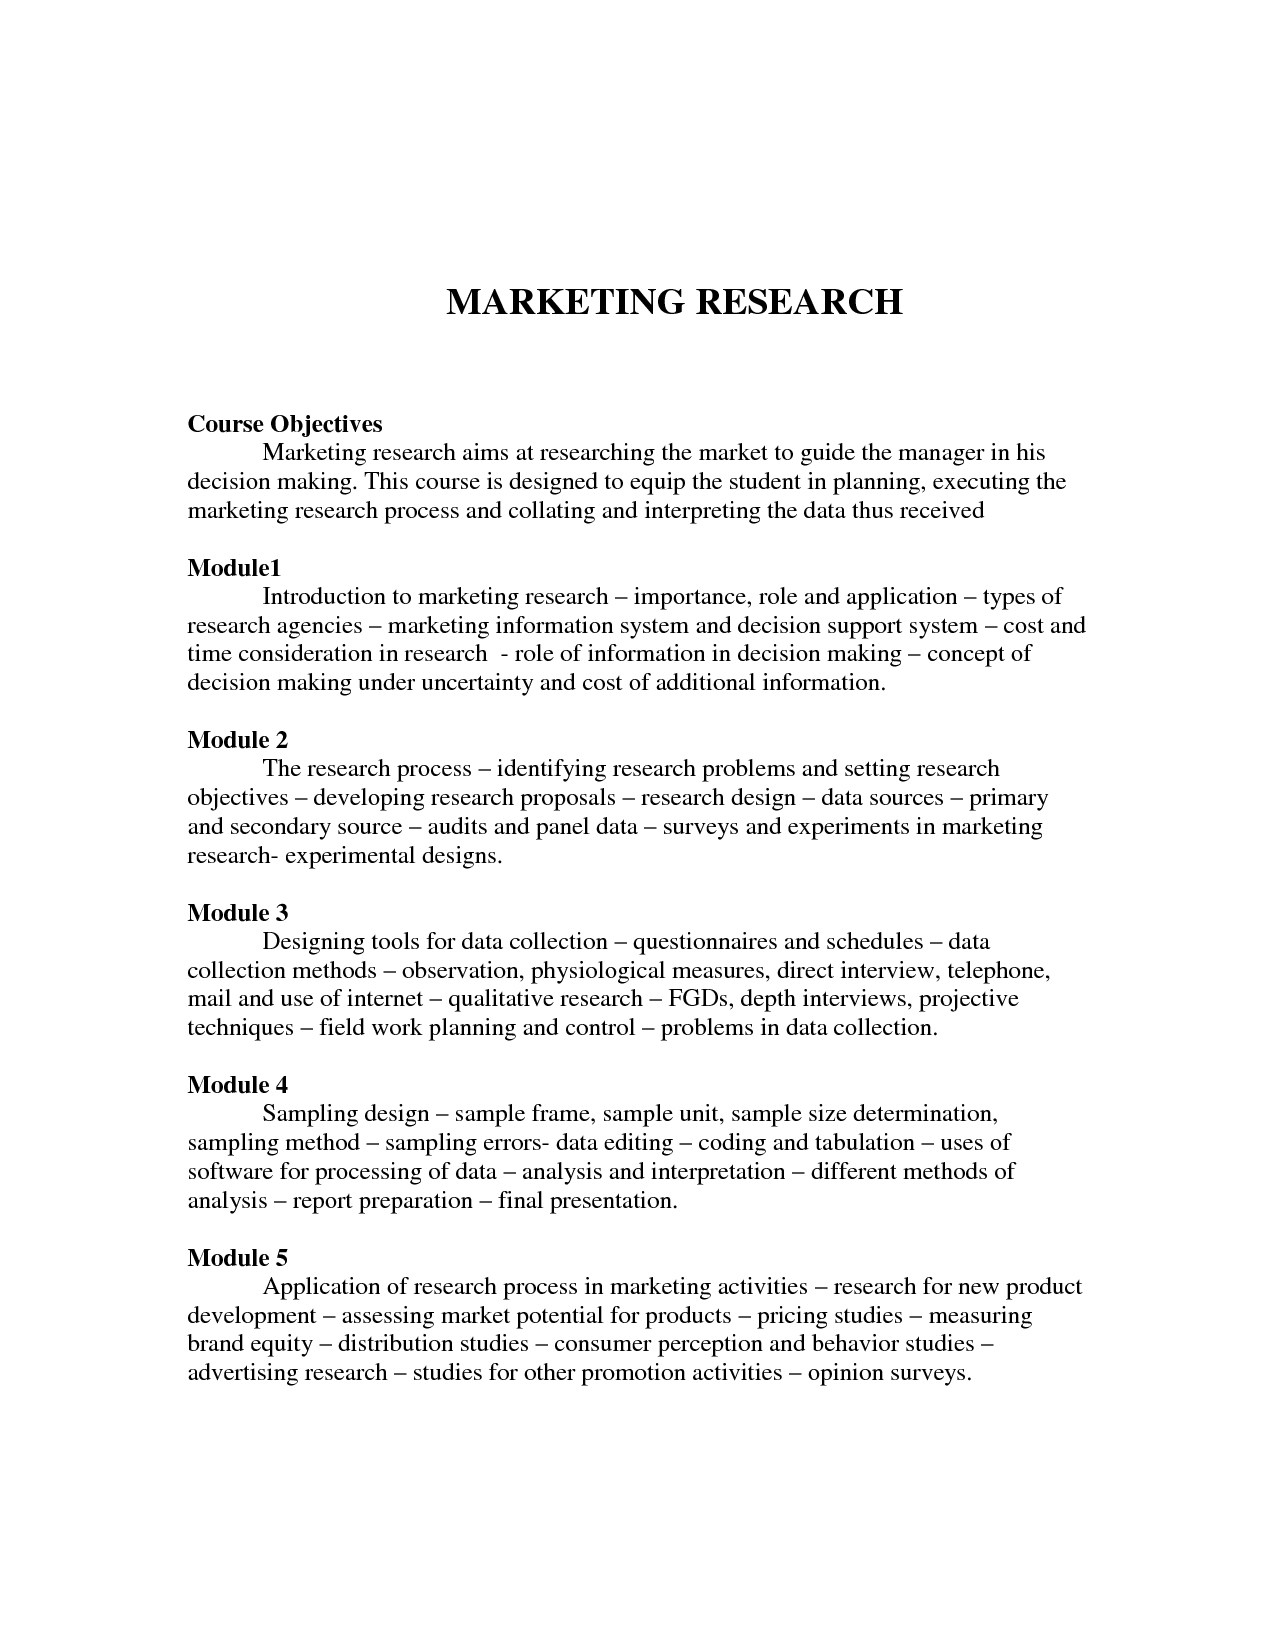 003 Marketing Researchr Introduction Sample Best Photos Of Market Proposal Template Pertaining To Design Presentation Techniques For And Project Proposals Rare Research Paper Full